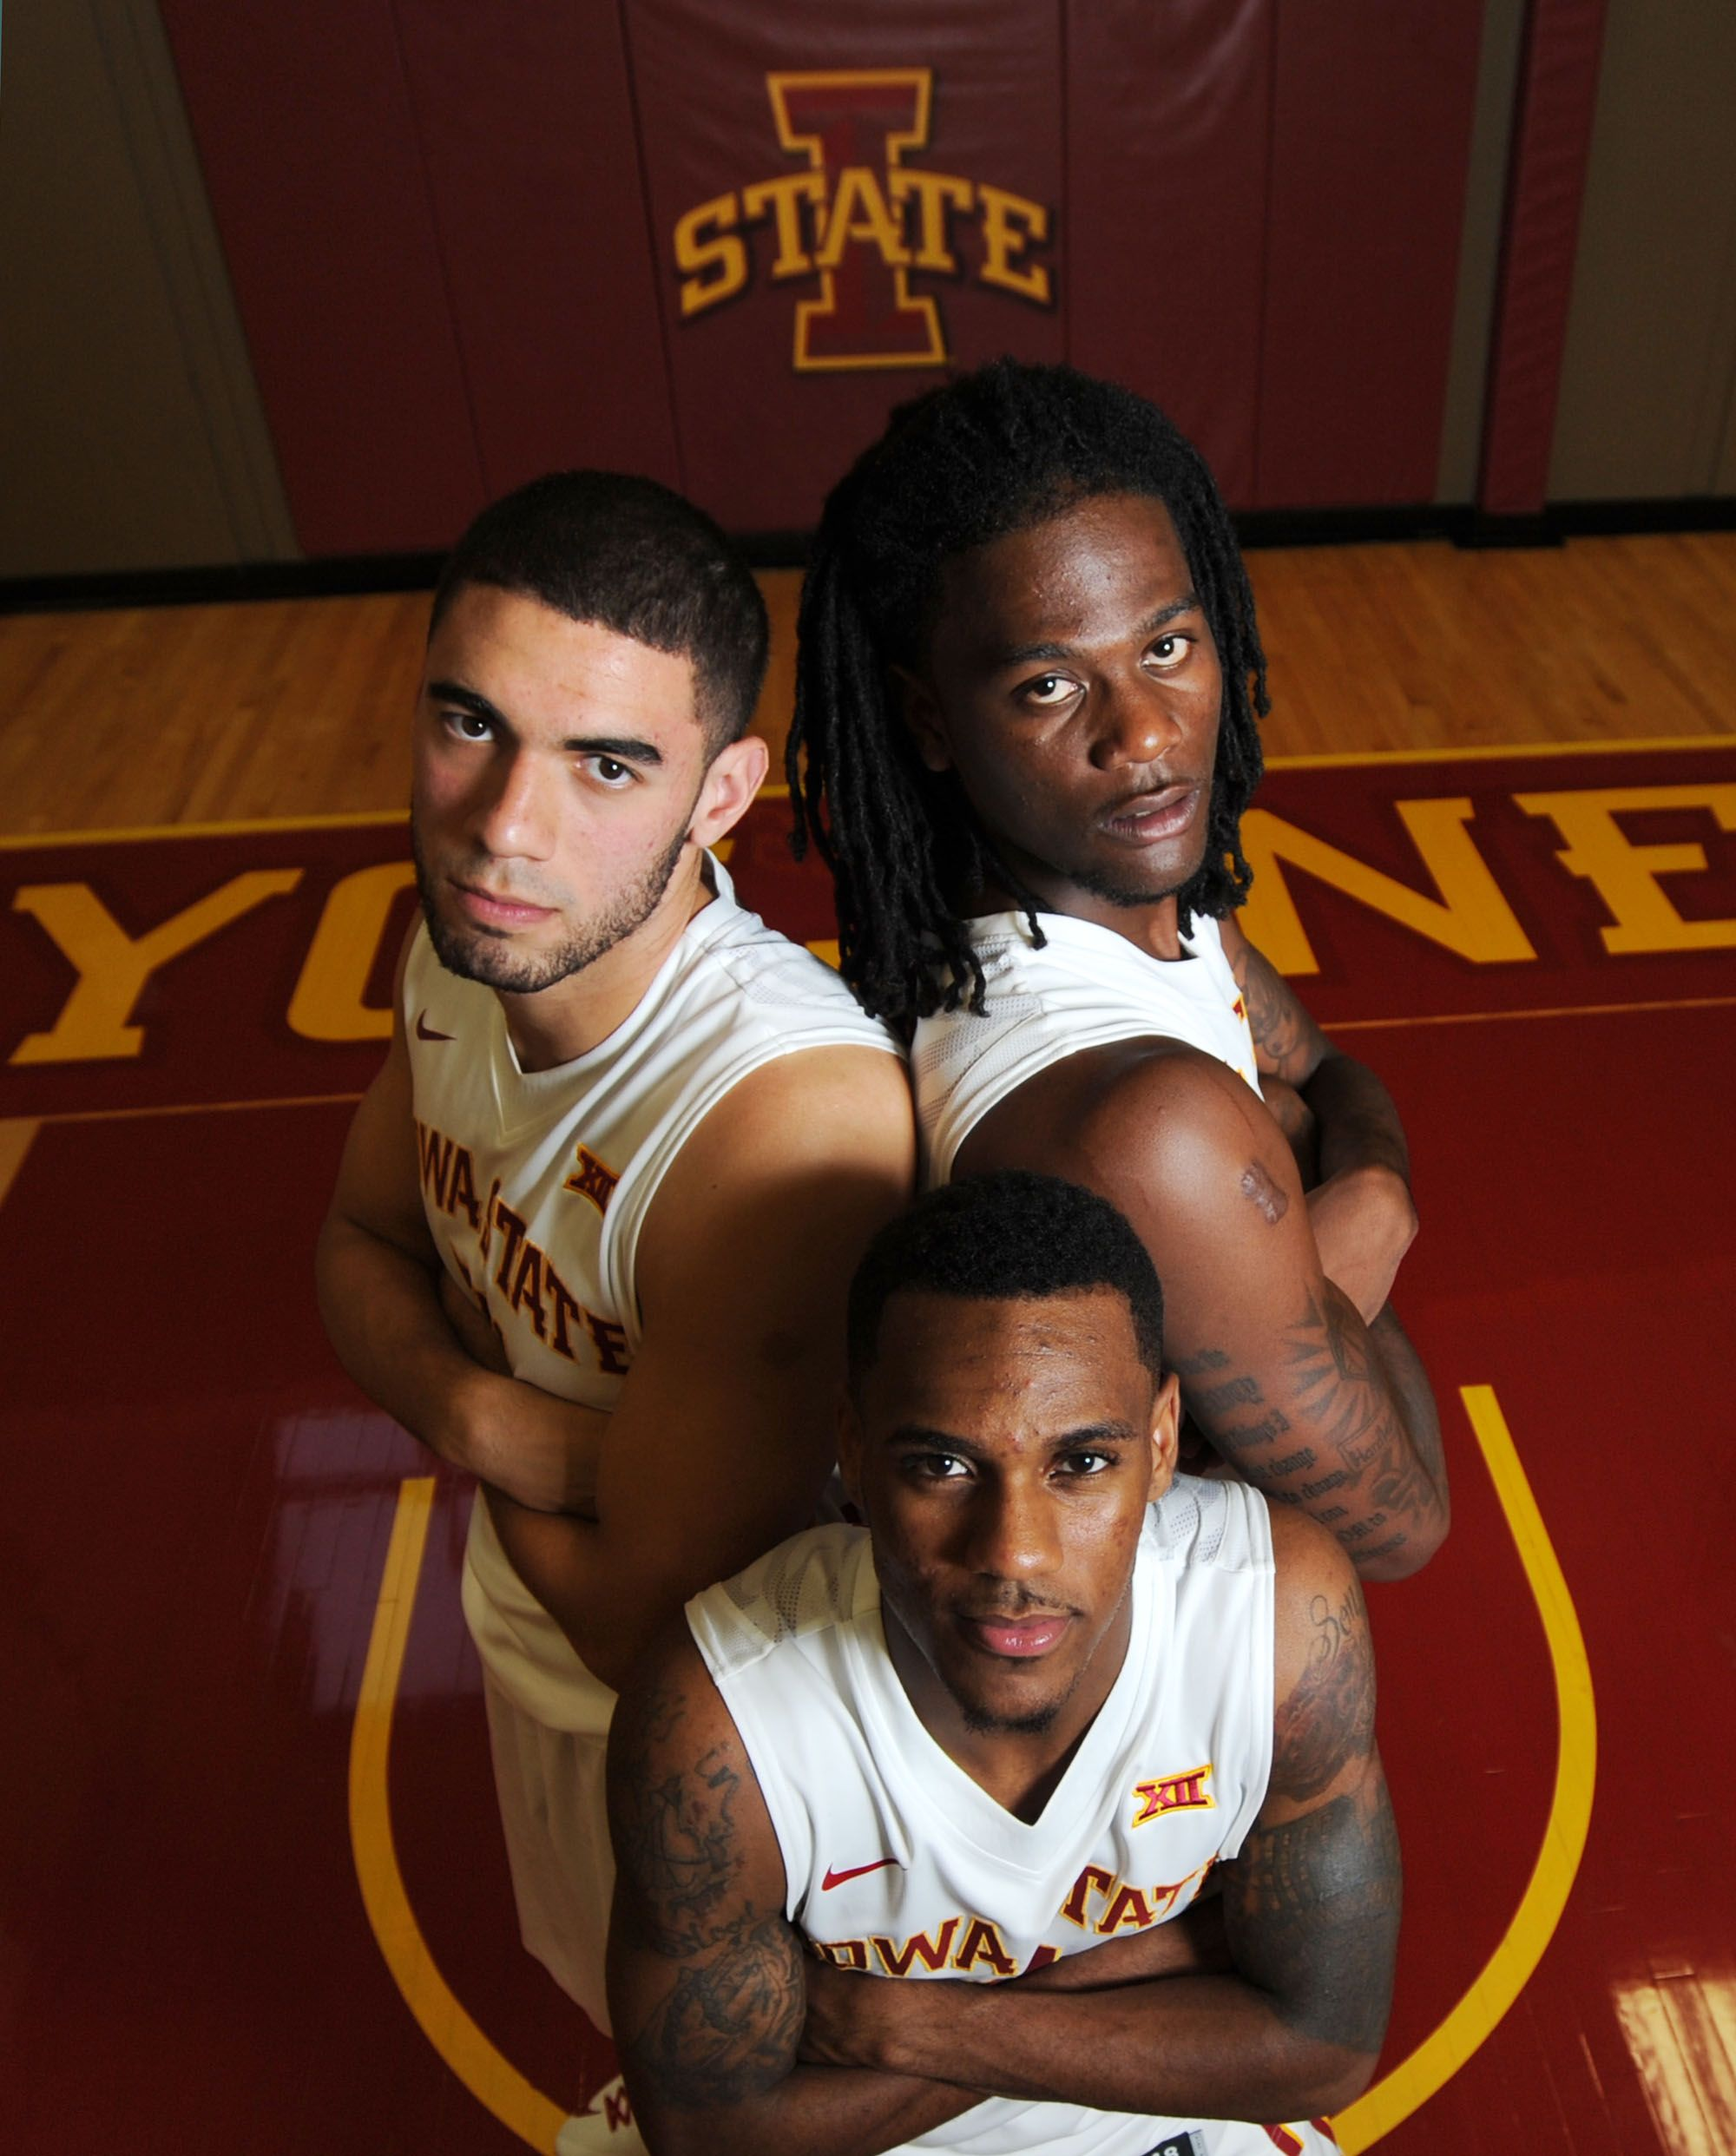 Iowa State S Jameel Mckay Top Right Joins Returning Starters